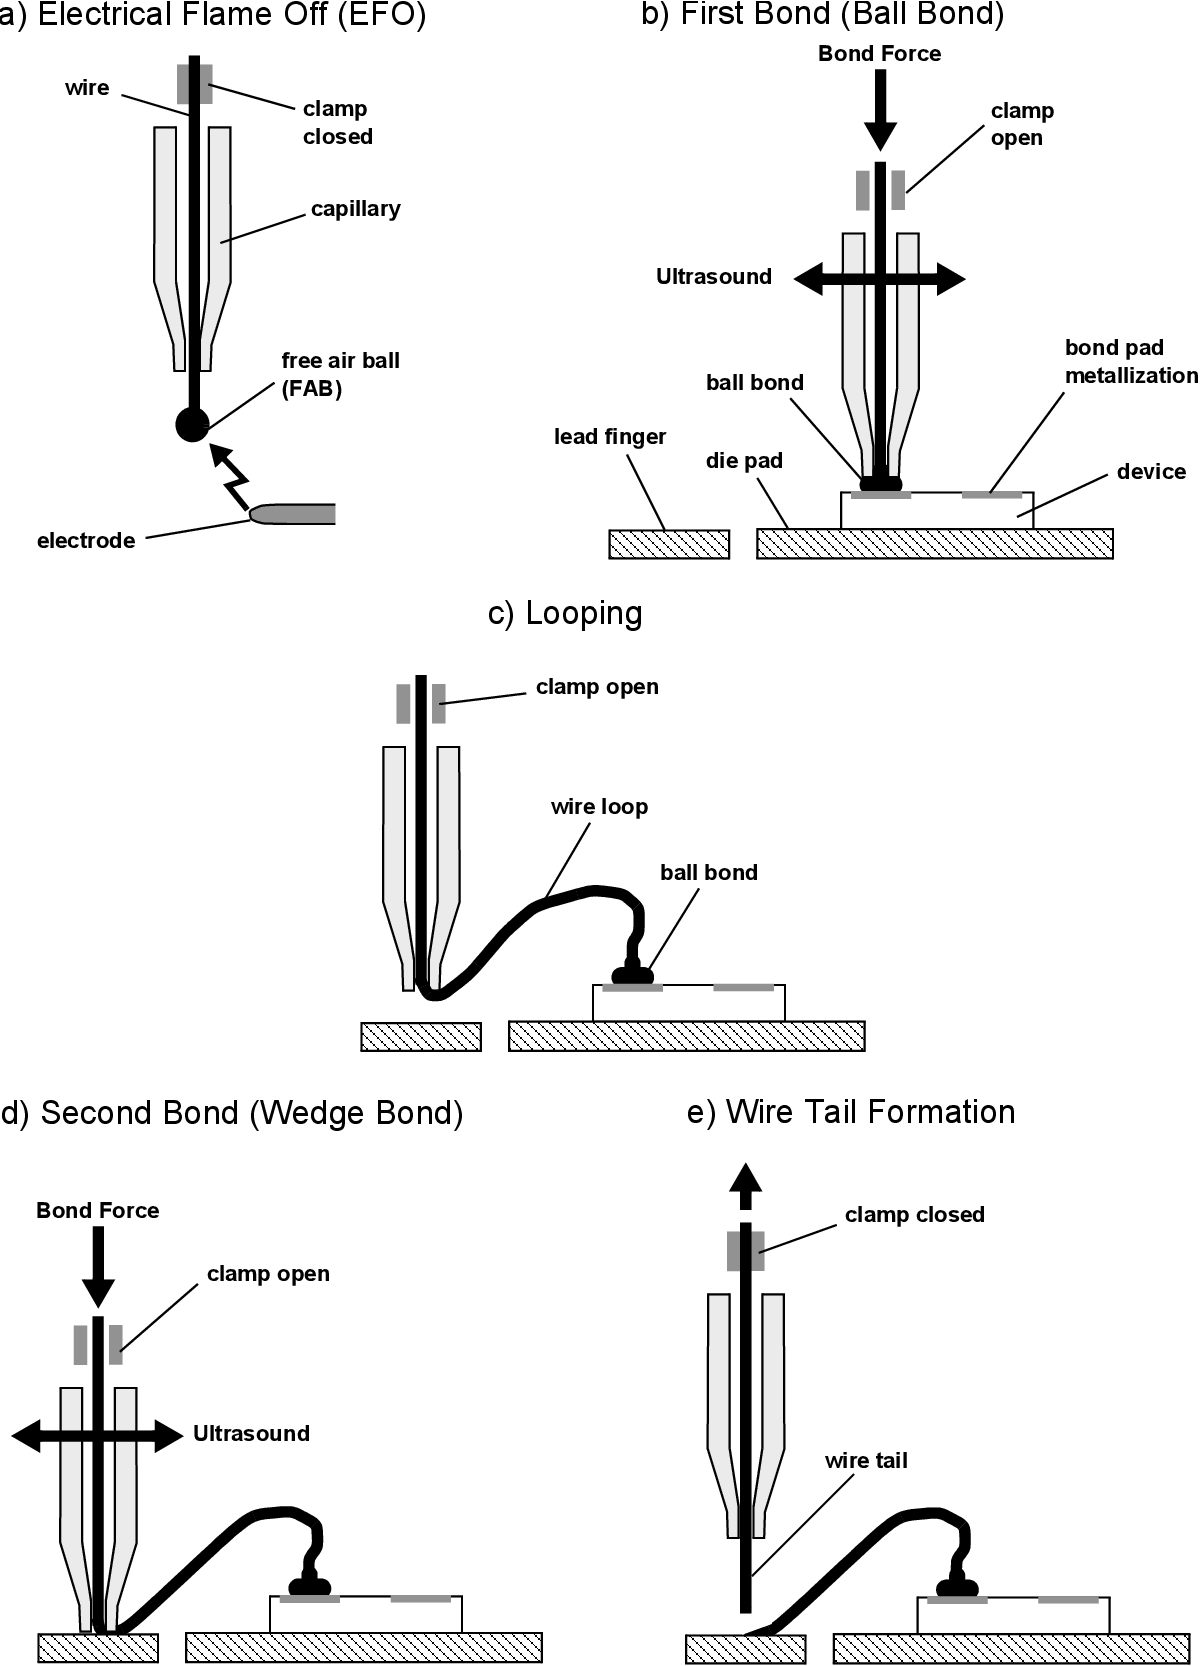 A Study Of The Electrical Flame Off Process During